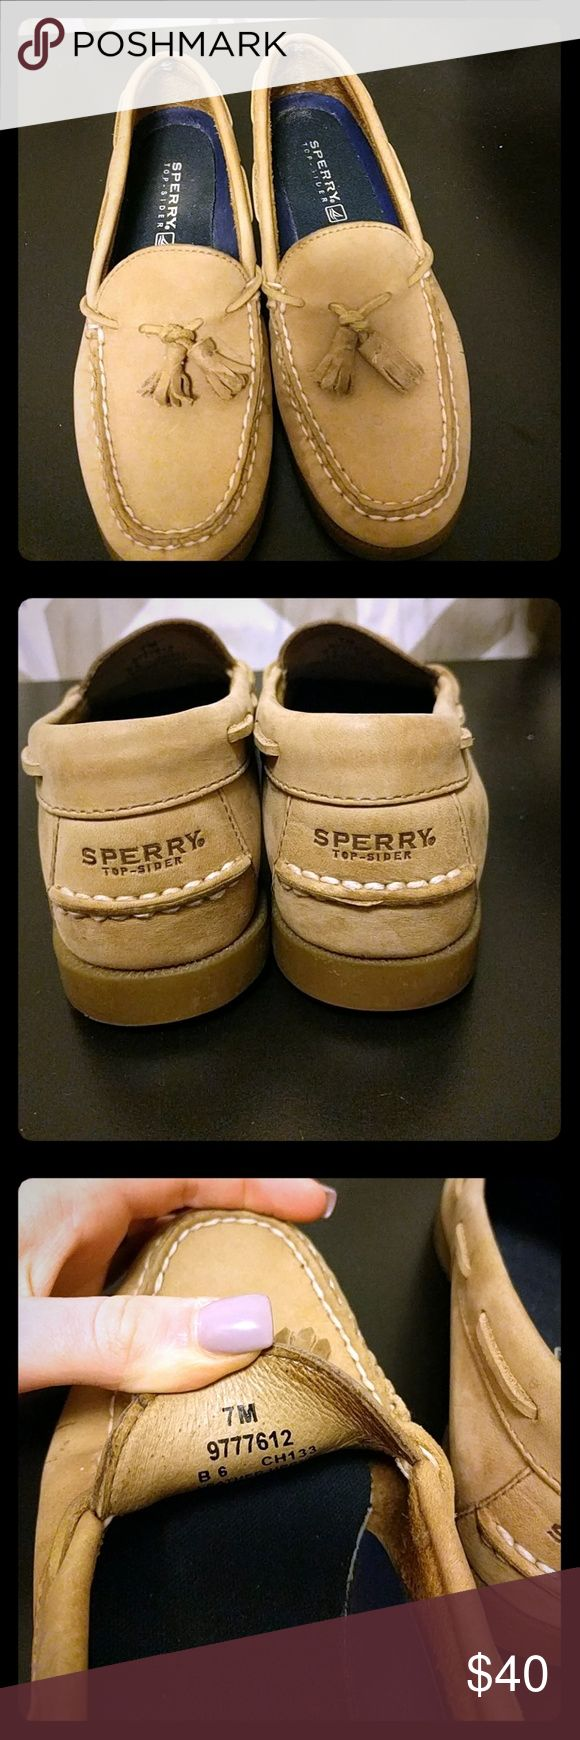 Women's Sperry Boat Shoes Super cute women's Sperry boat shoes. Only worn a few times so they still need broken in. Size 7. Sperry Top-Sider Shoes Flats & Loafers